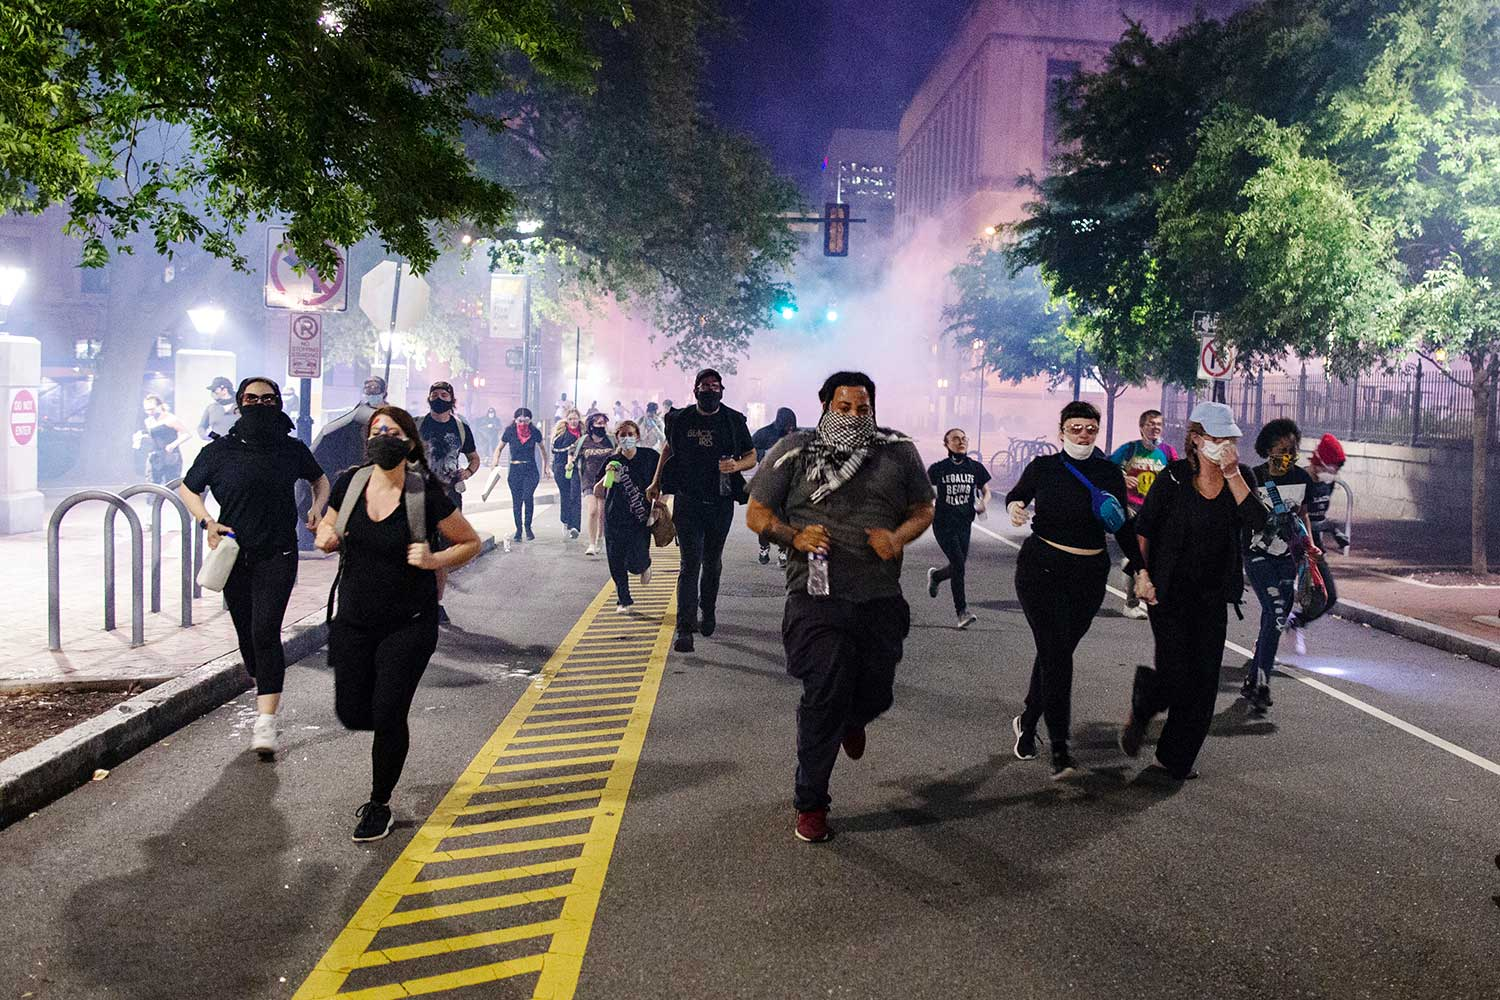 Protesters wearing protective face masks run down a street. The air is hazy with tear gas.